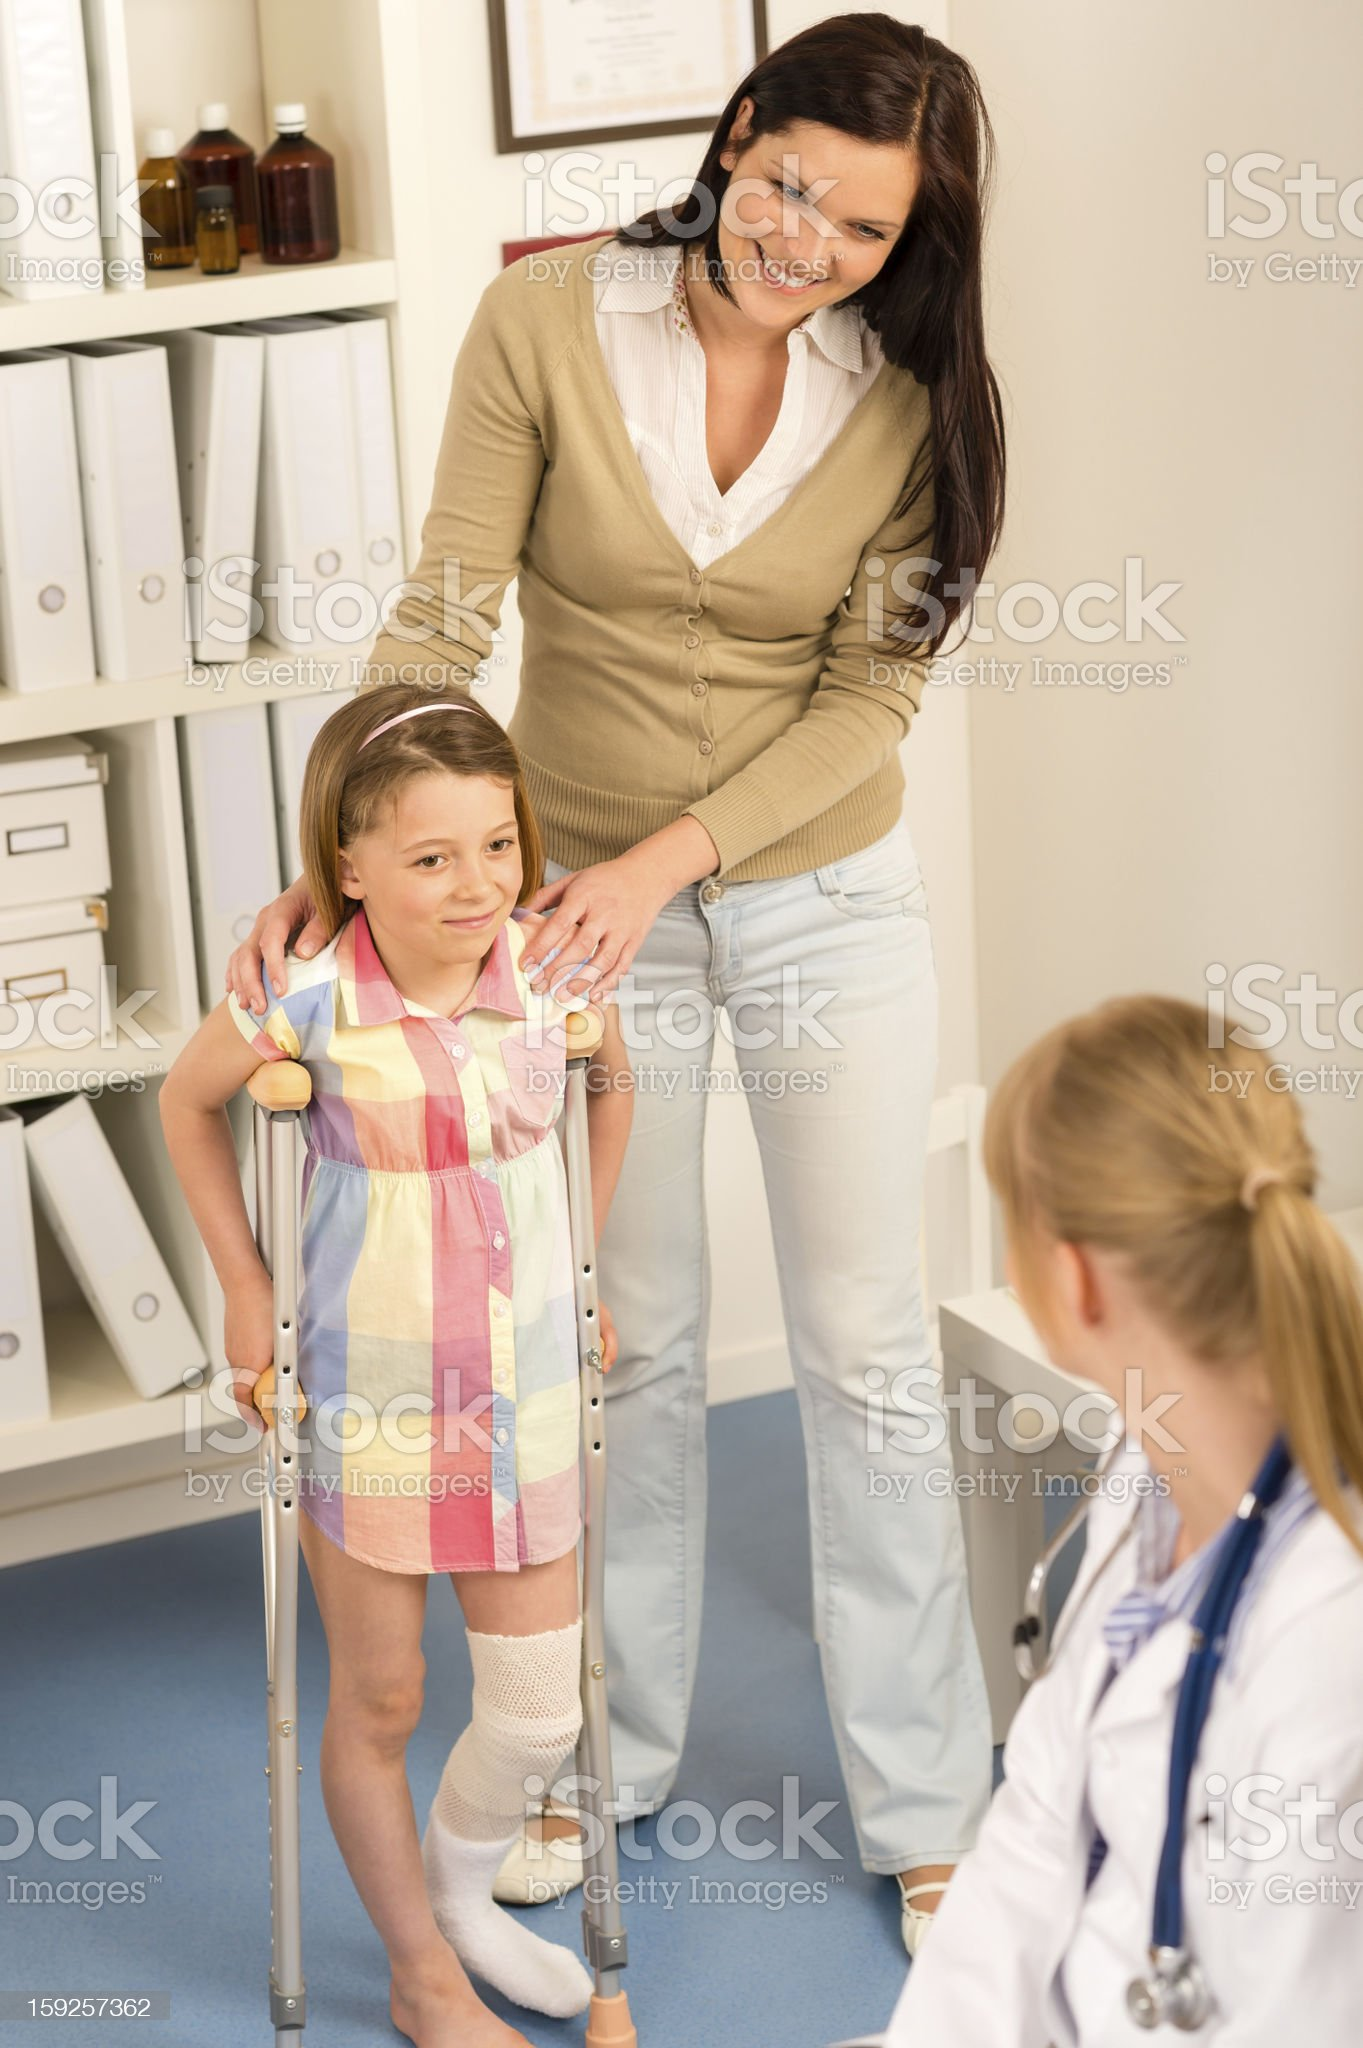 At the pediatrician little girl with crutches royalty-free stock photo